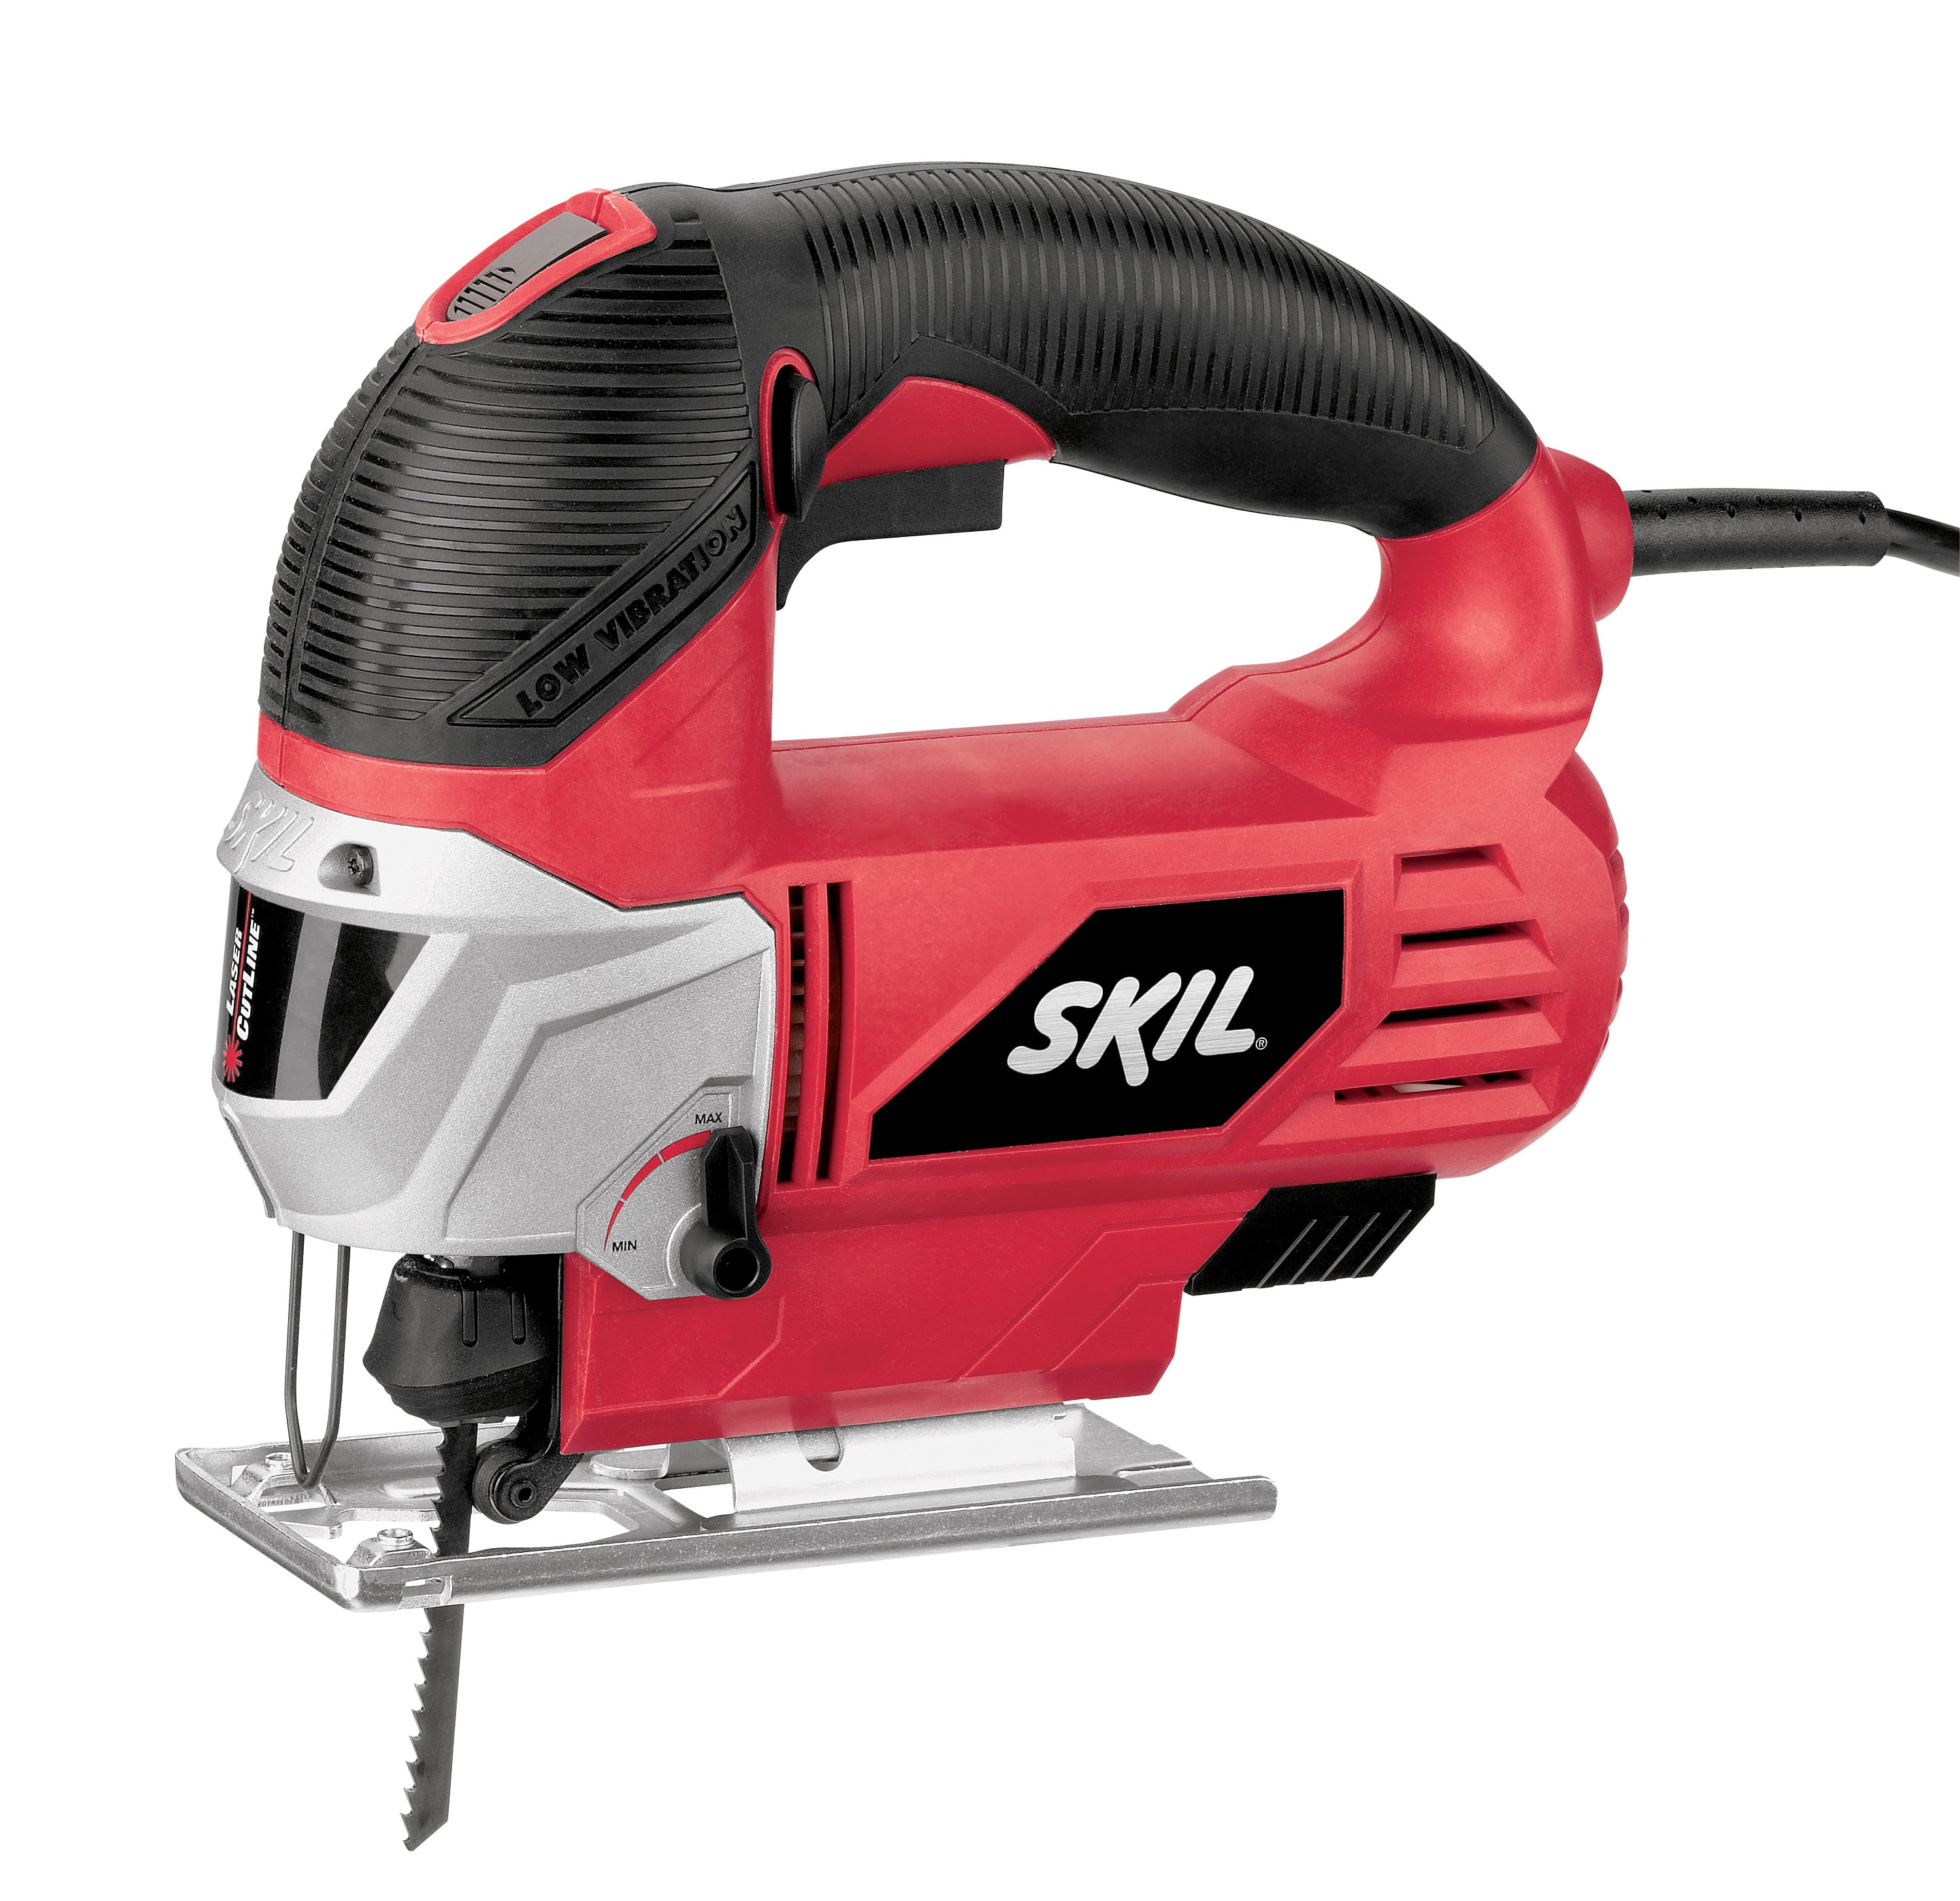 Skil 4495-02 6.0 Amp Orbital Jigsaw with Laser by Overstock